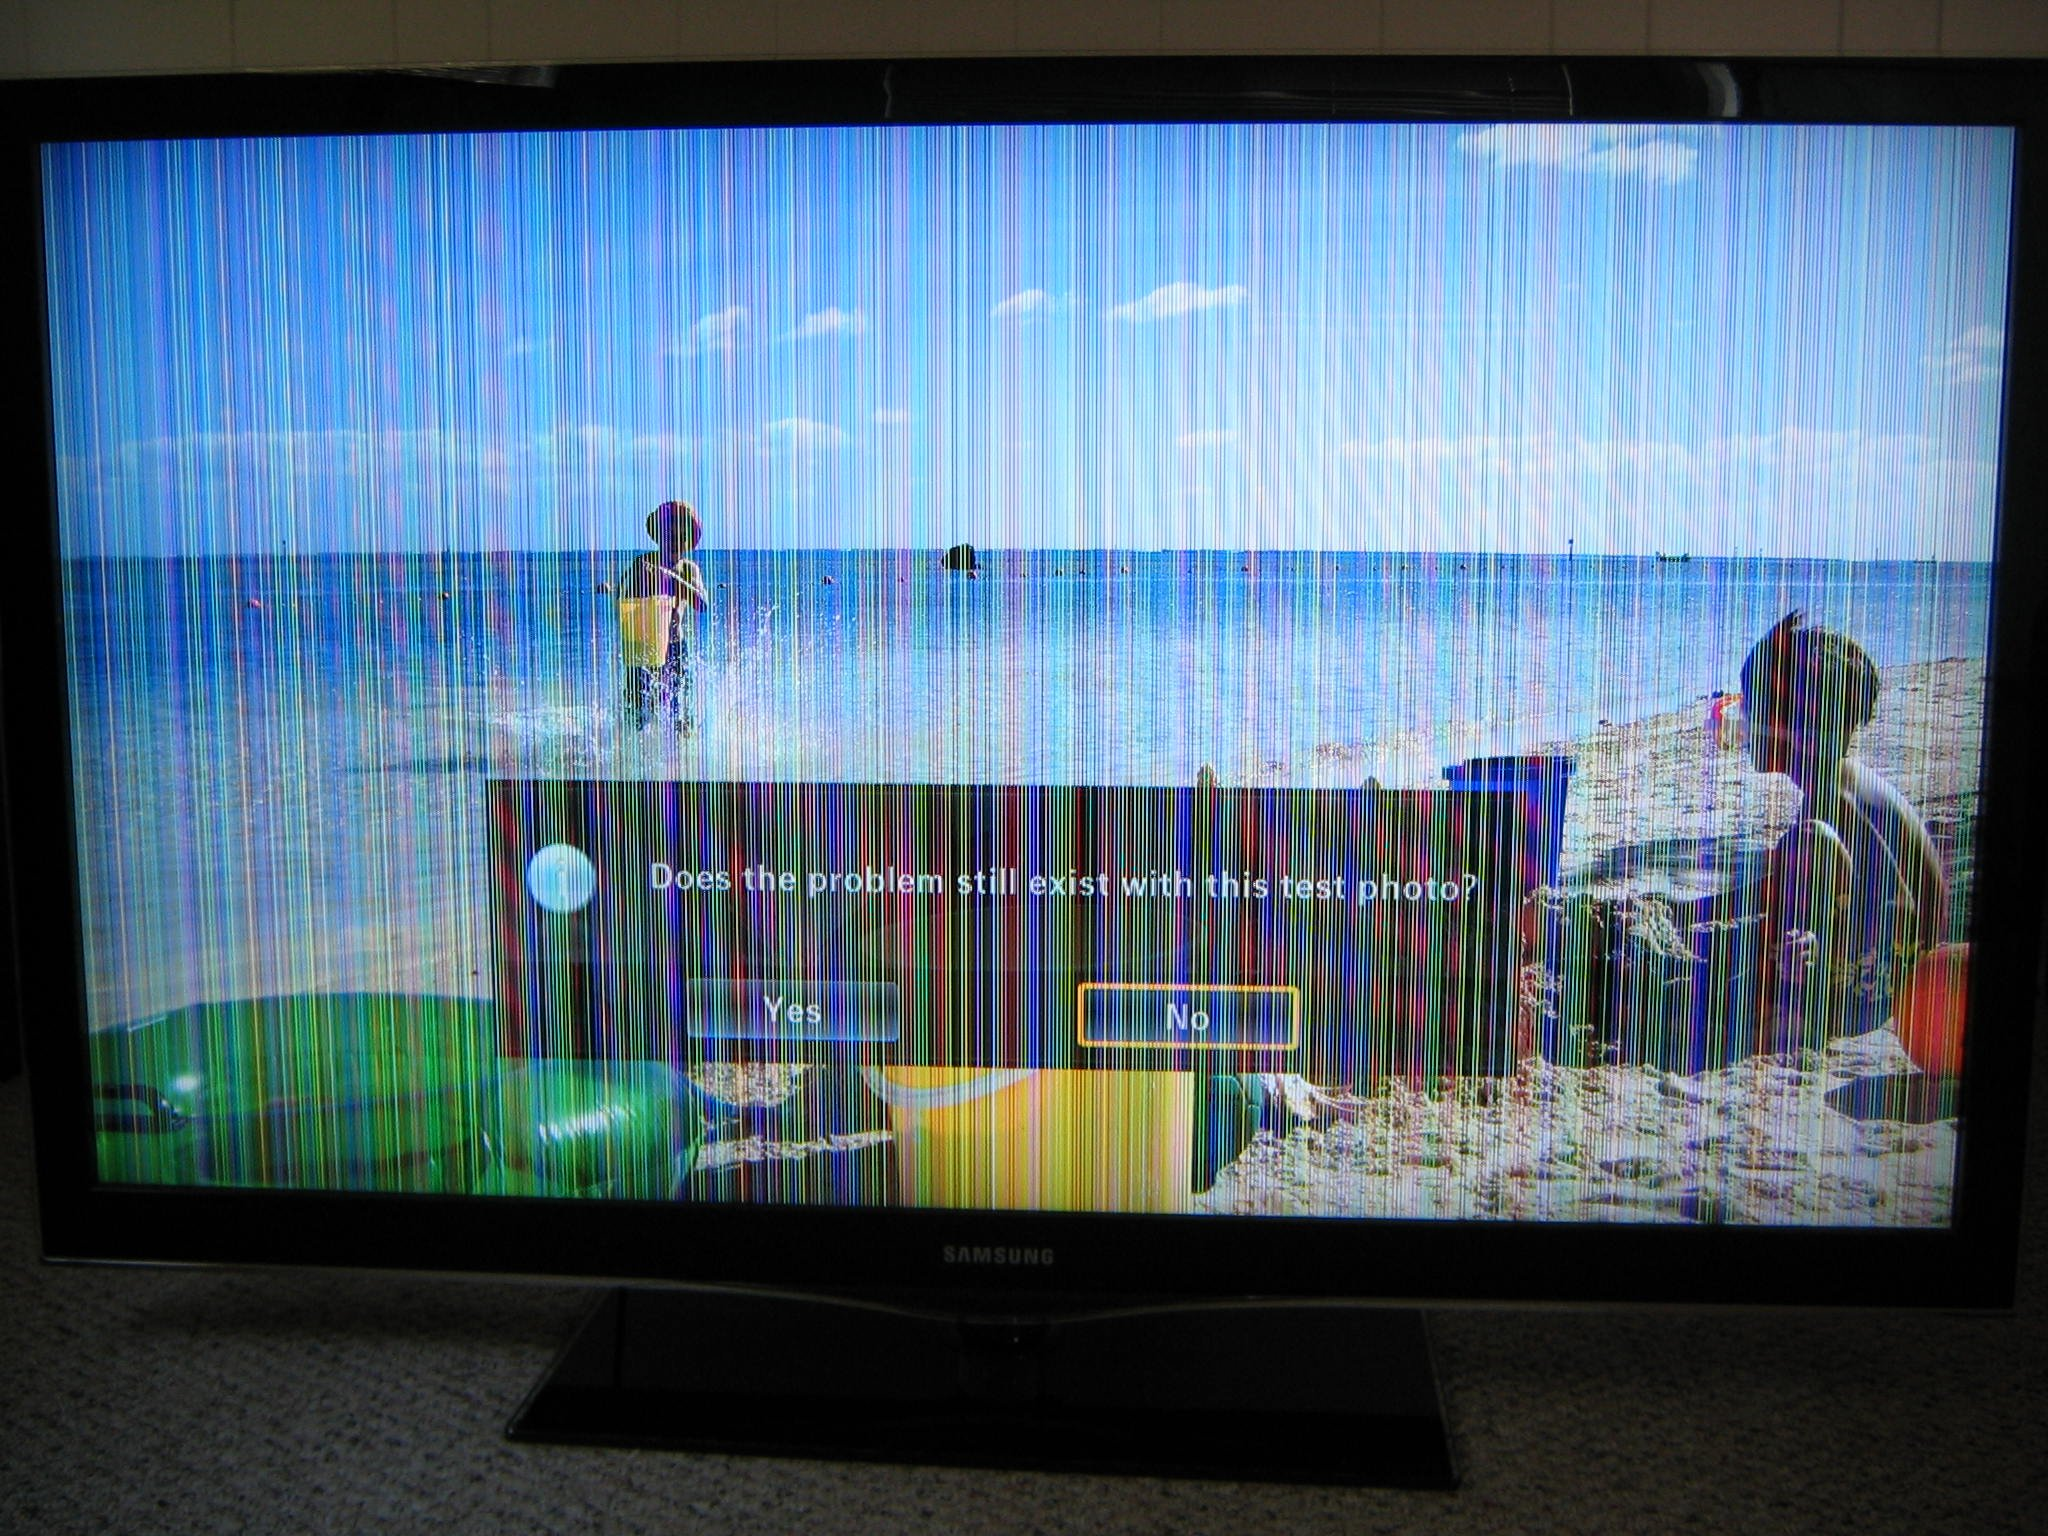 Samsung LCD TV colored vertical lines - issue resolved - loose